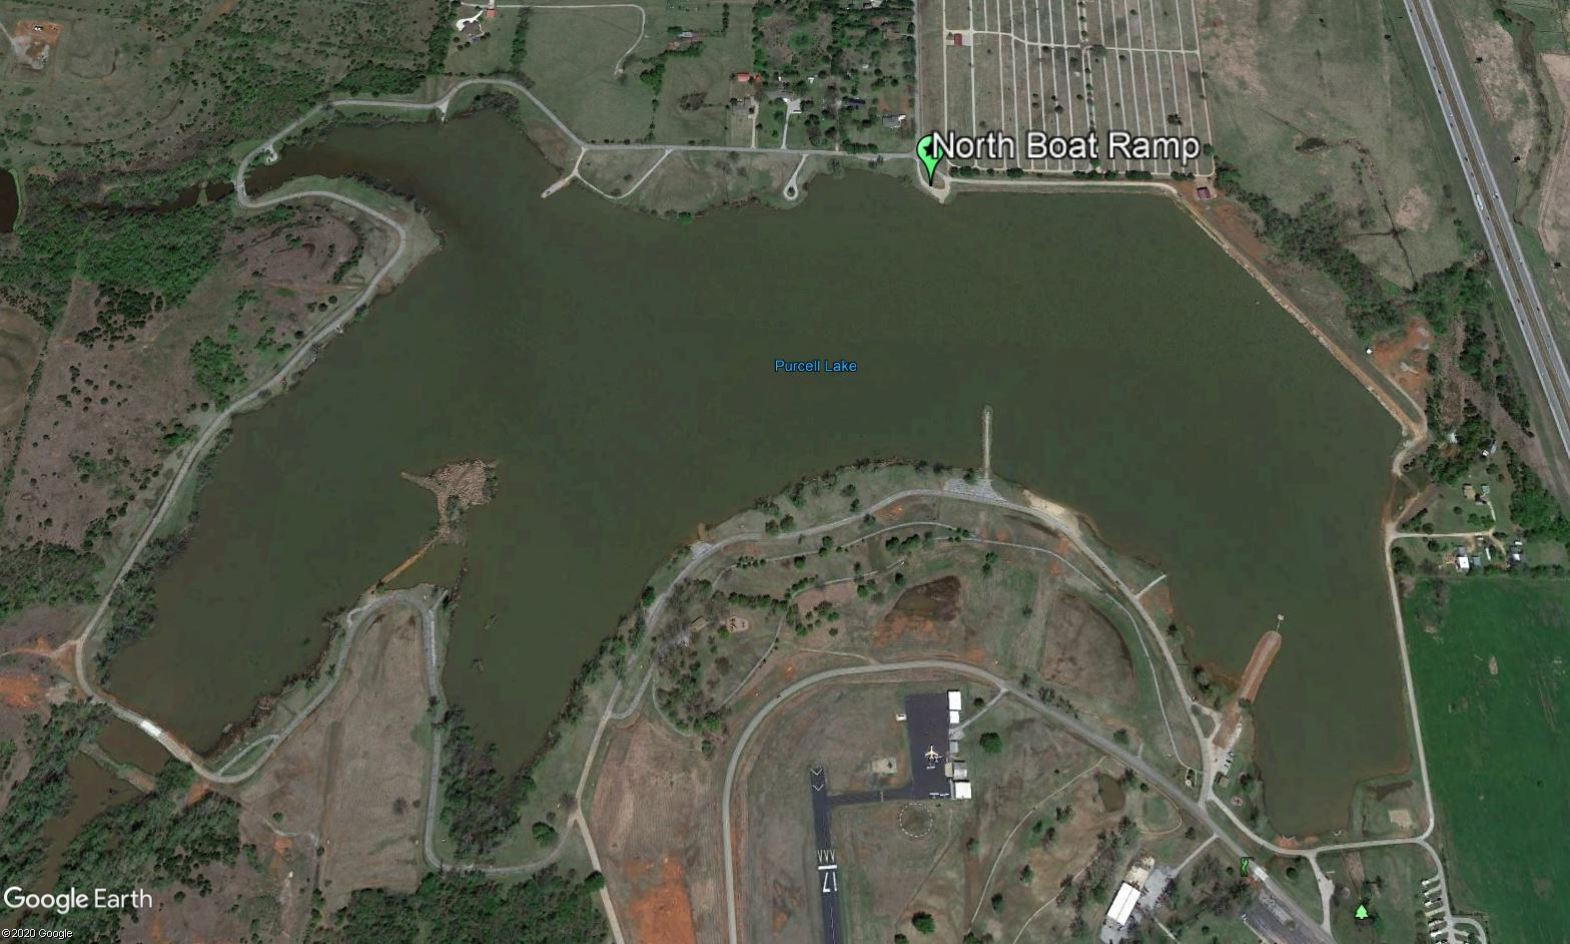 North Boat Ramp Location 1